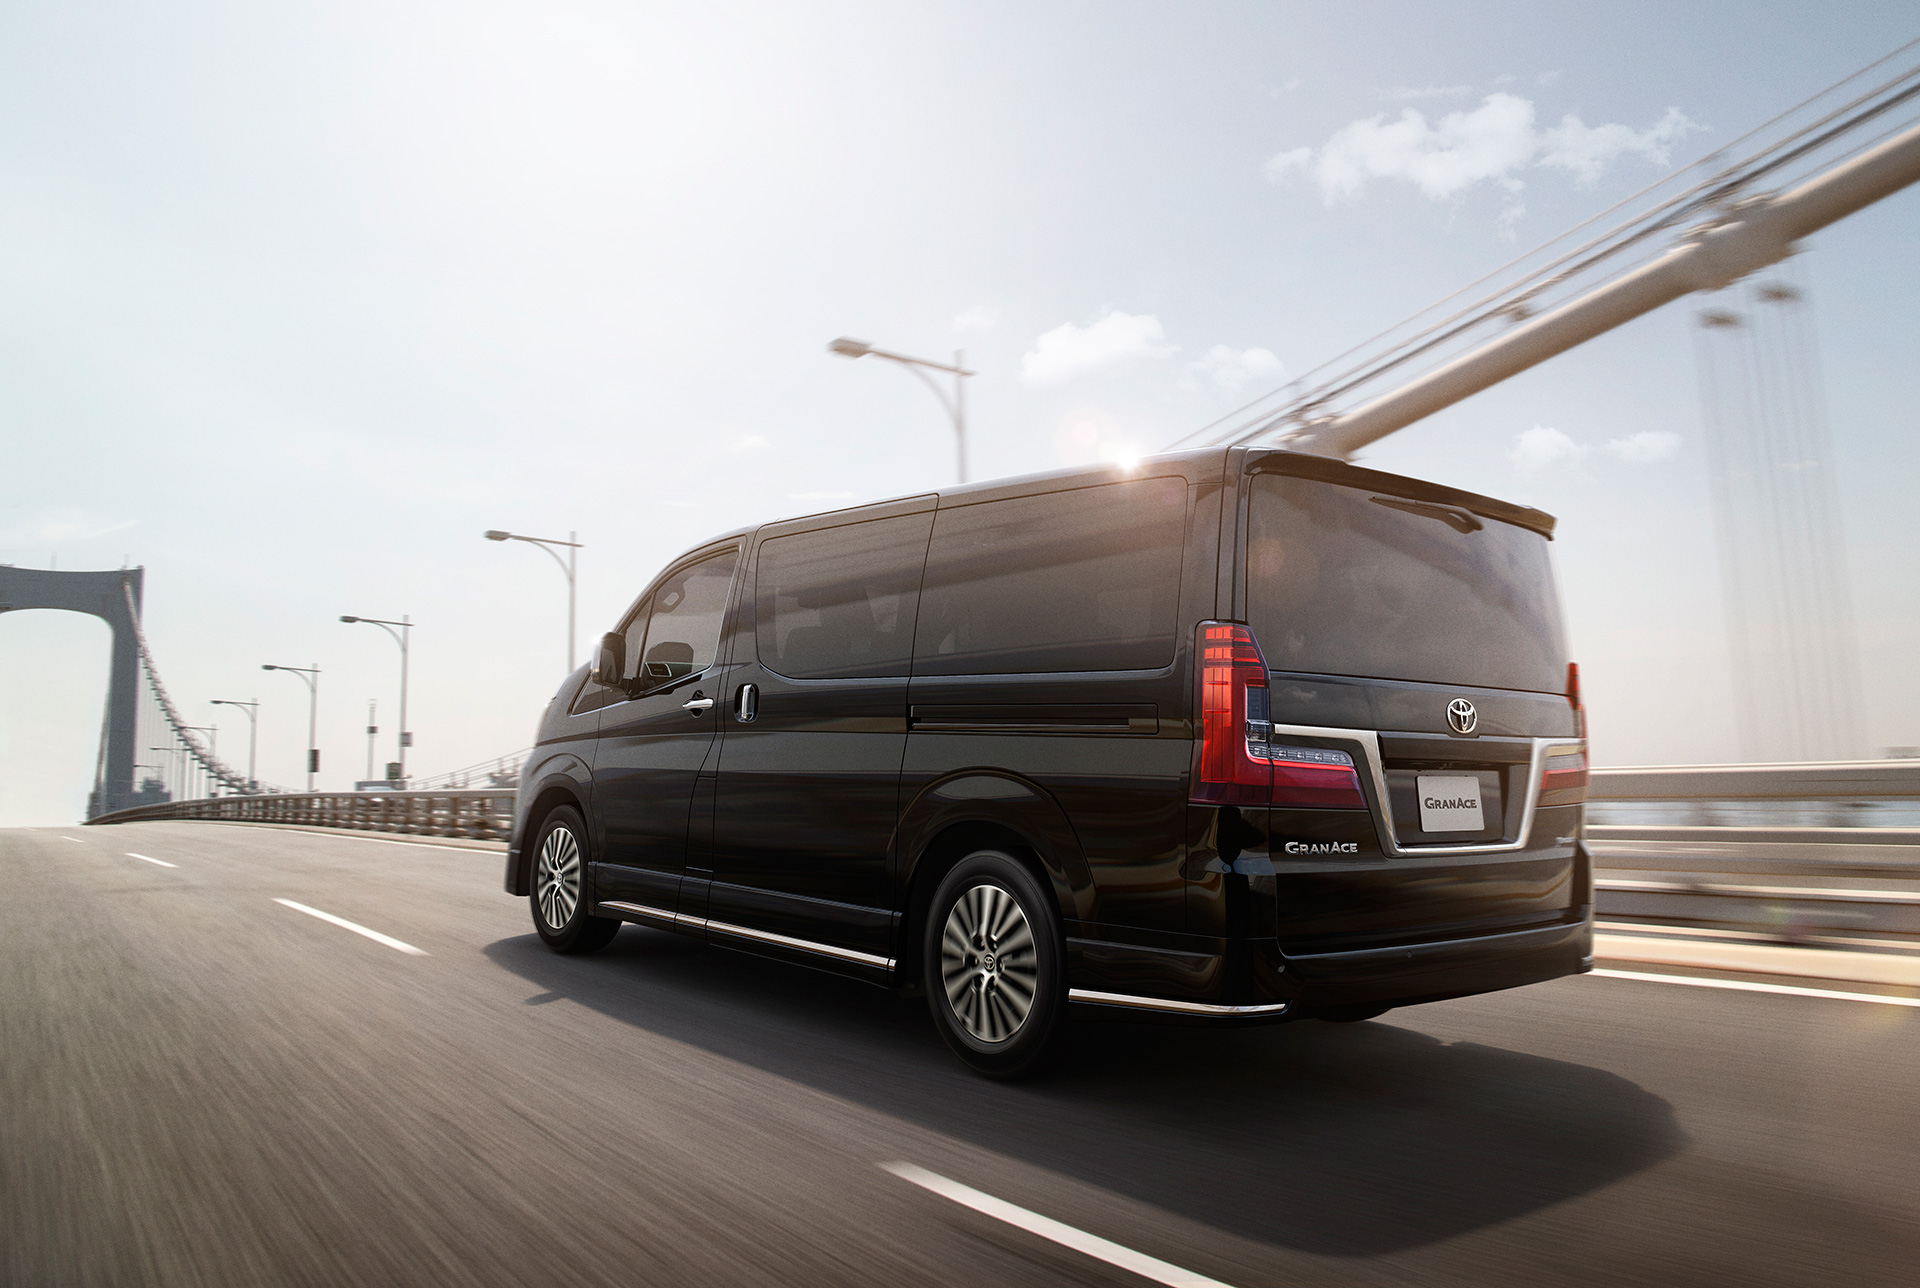 """Toyota to Launch New Model """"Granace"""" in JapanSales of large luxury wagon to start from December 16 - Image 3"""